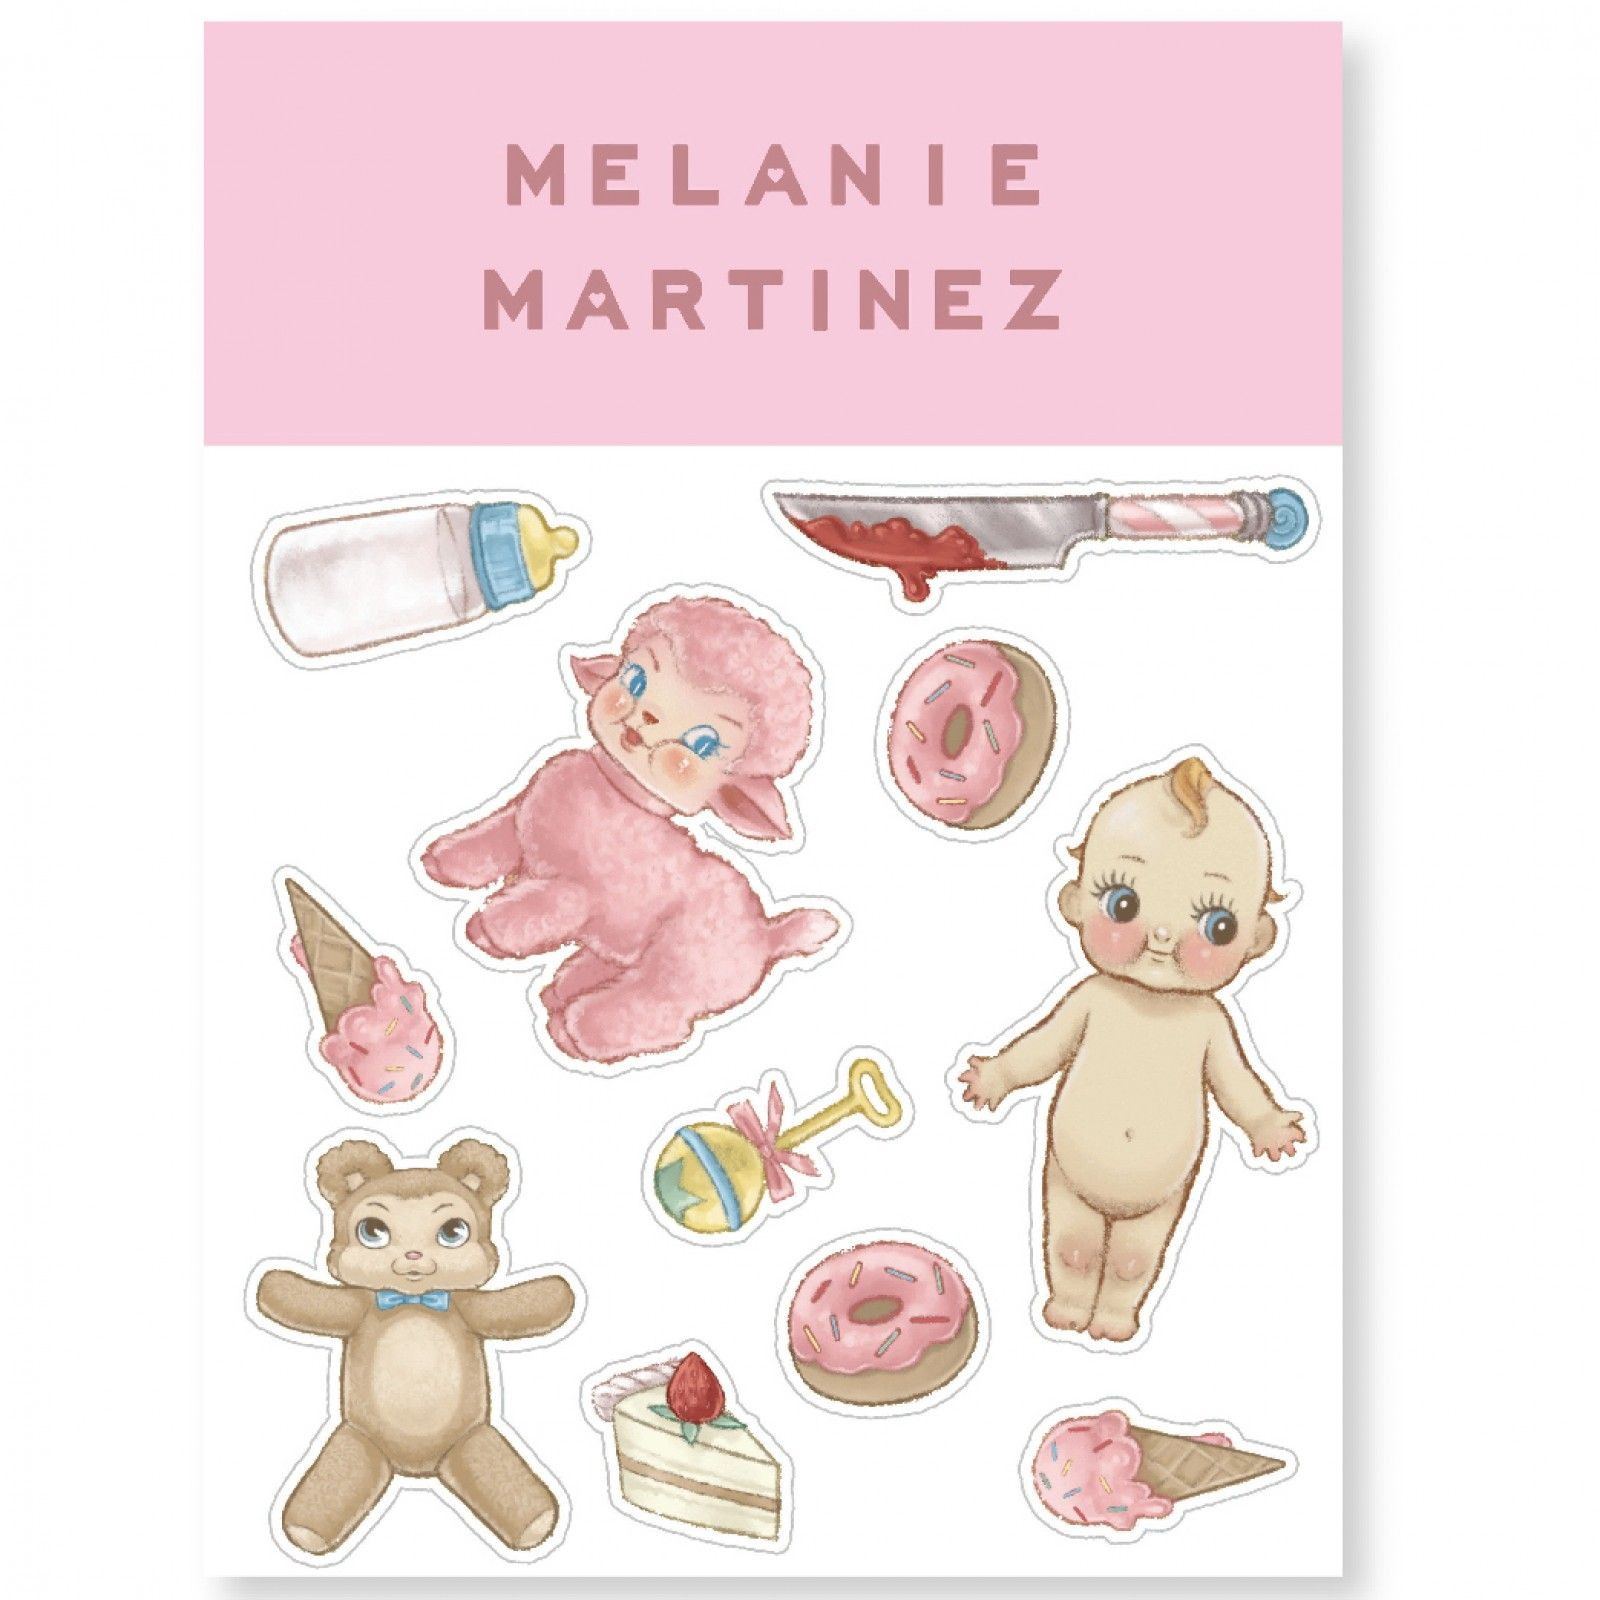 Melanie Martinez Toys Temporary Tattoo Thinking Of Actually Getting These Permanently Done Melanie Martinez Drawings Melanie Martinez Melanie